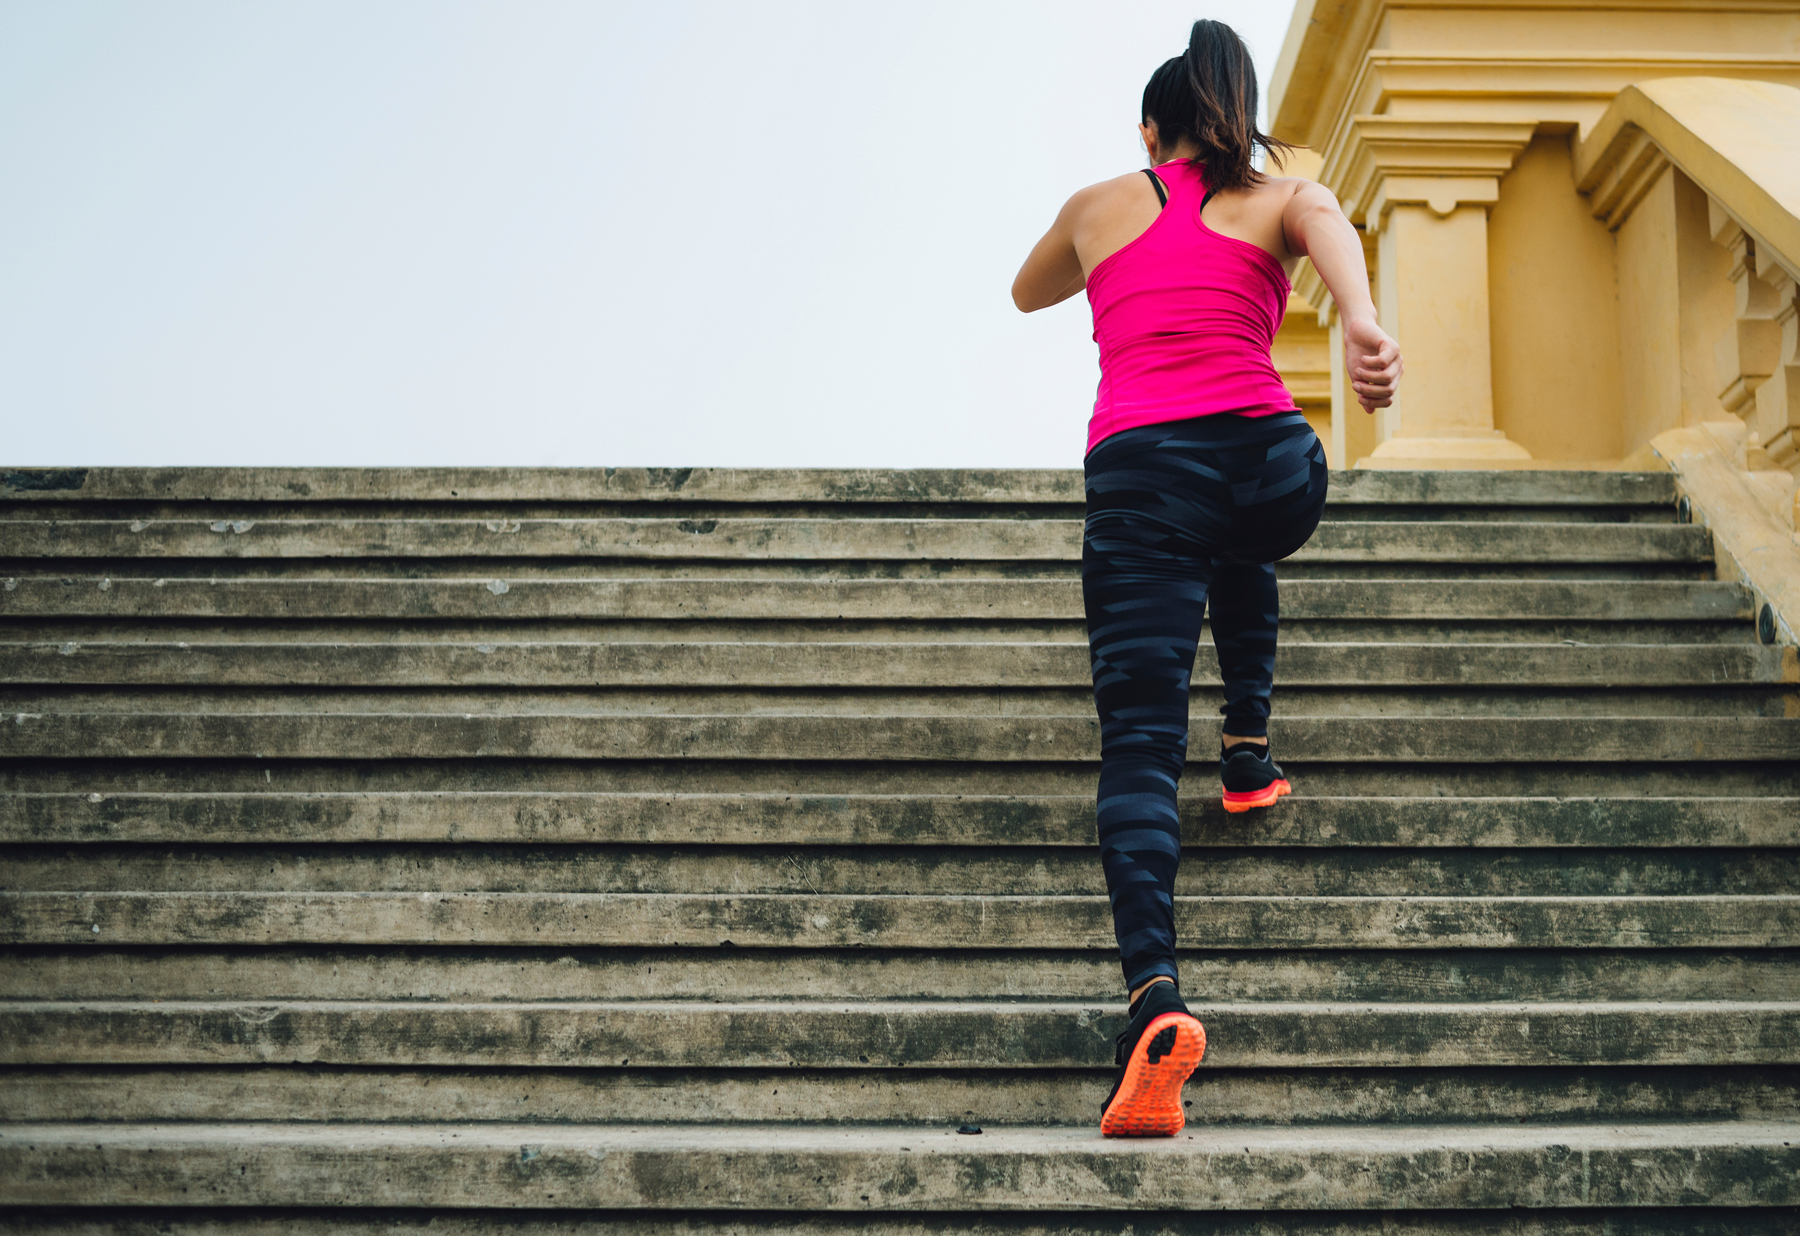 Go for Step-Ups- Climbing Stairs